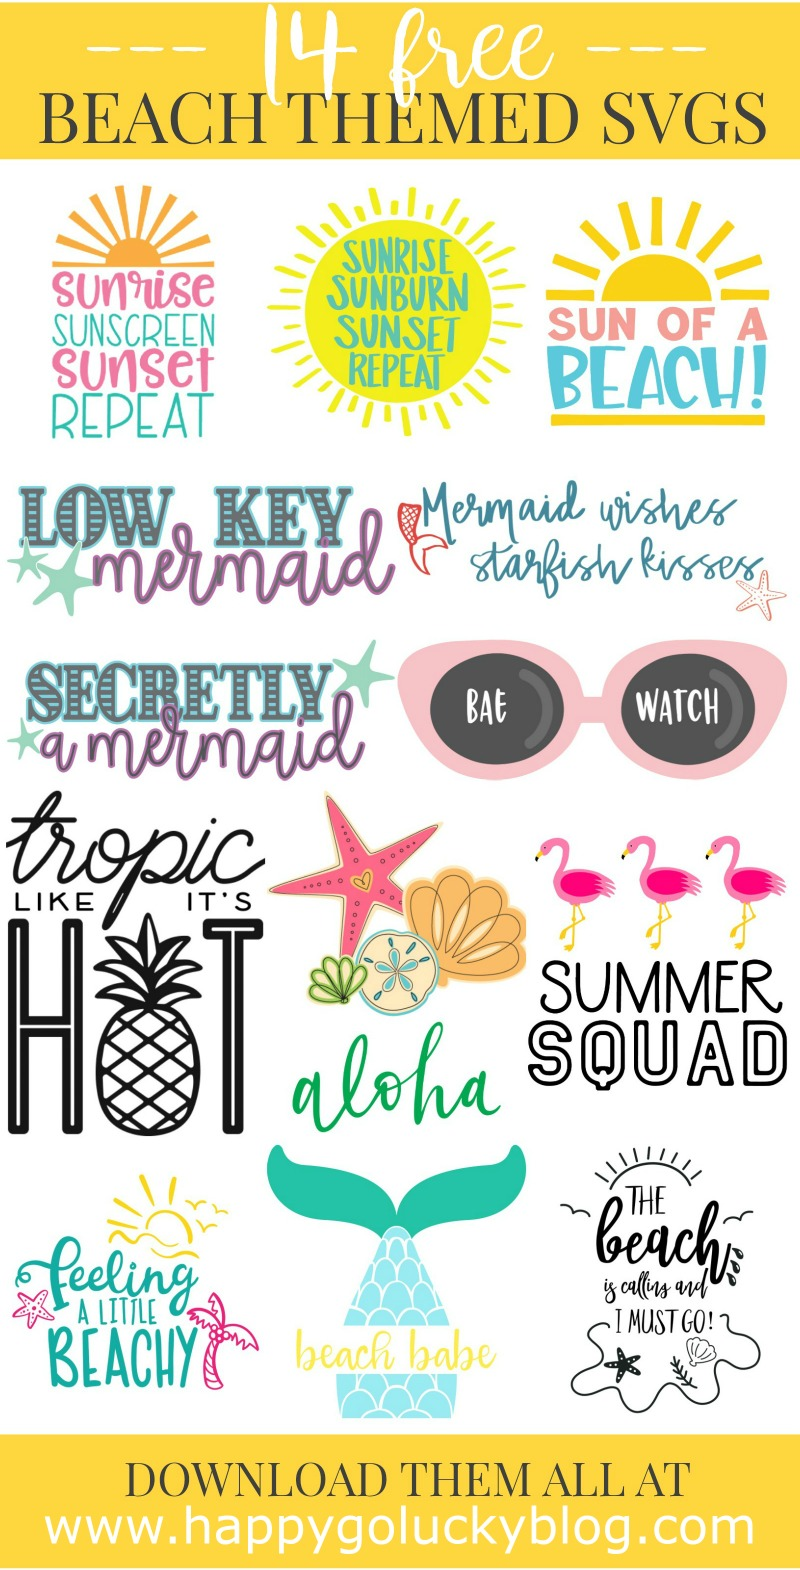 https://www.happygoluckyblog.com/wp-content/uploads/2019/06/Beach-SVG-Collection.jpg